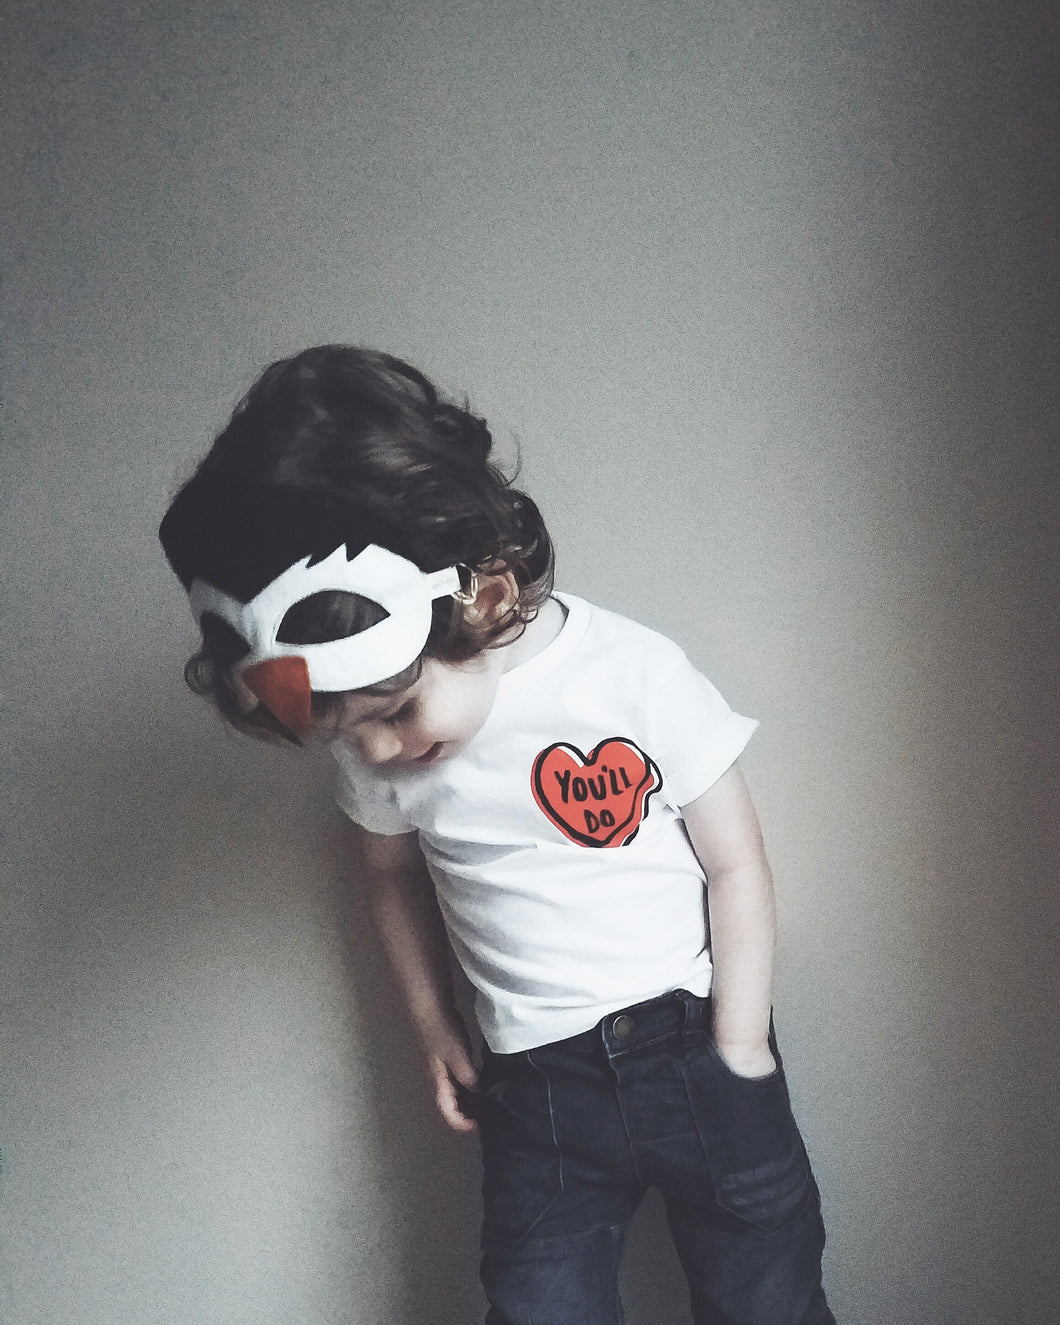 You'll Do Toddler Valentine's Graphic Tee